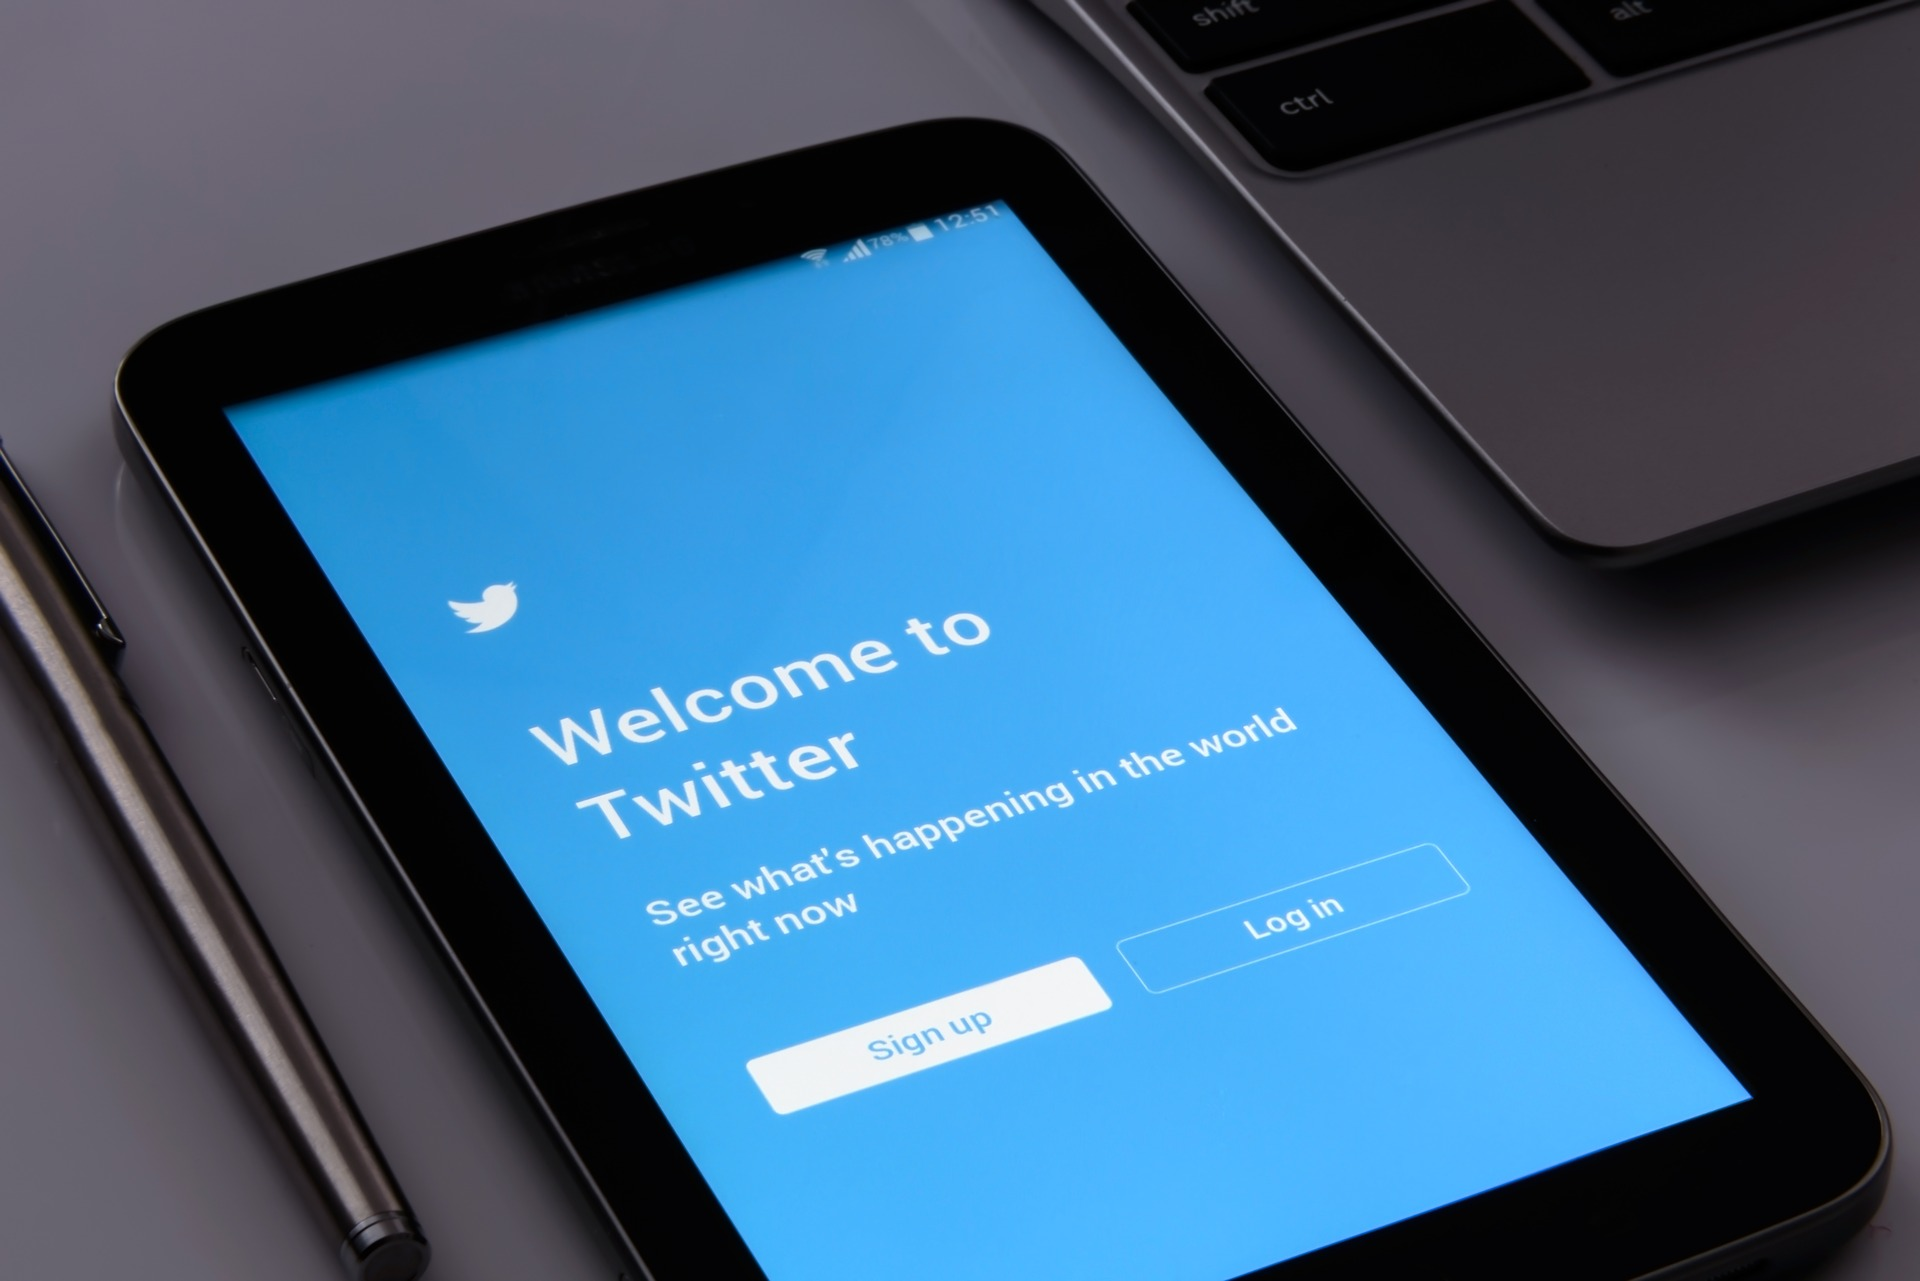 How to Grow Audience with Guest Blogging - Twitter search